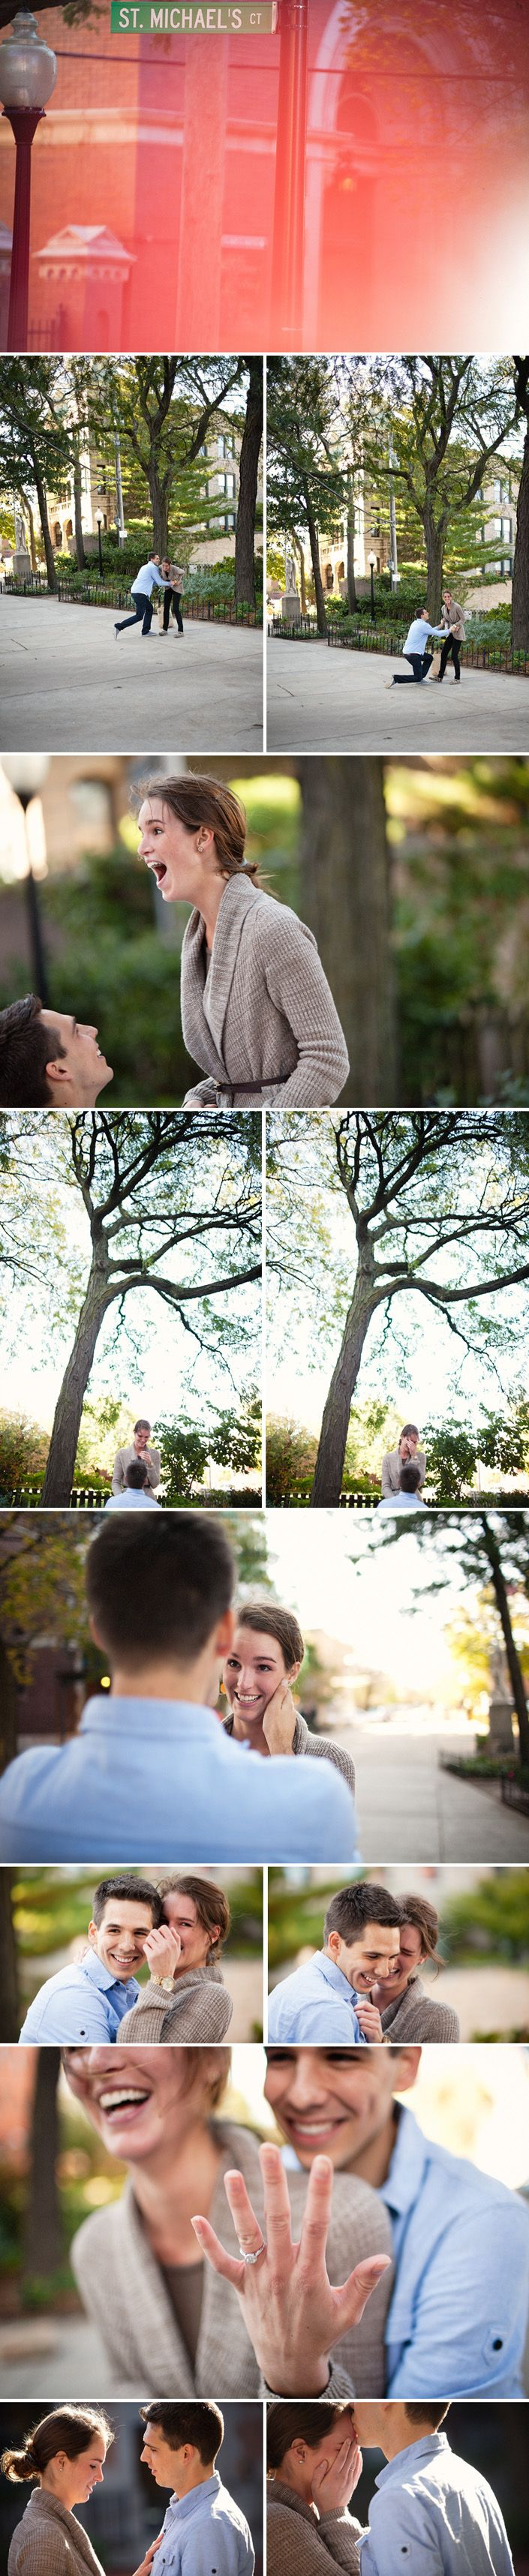 reasons to hire a photographer for the proposal.... you can't recreate this!